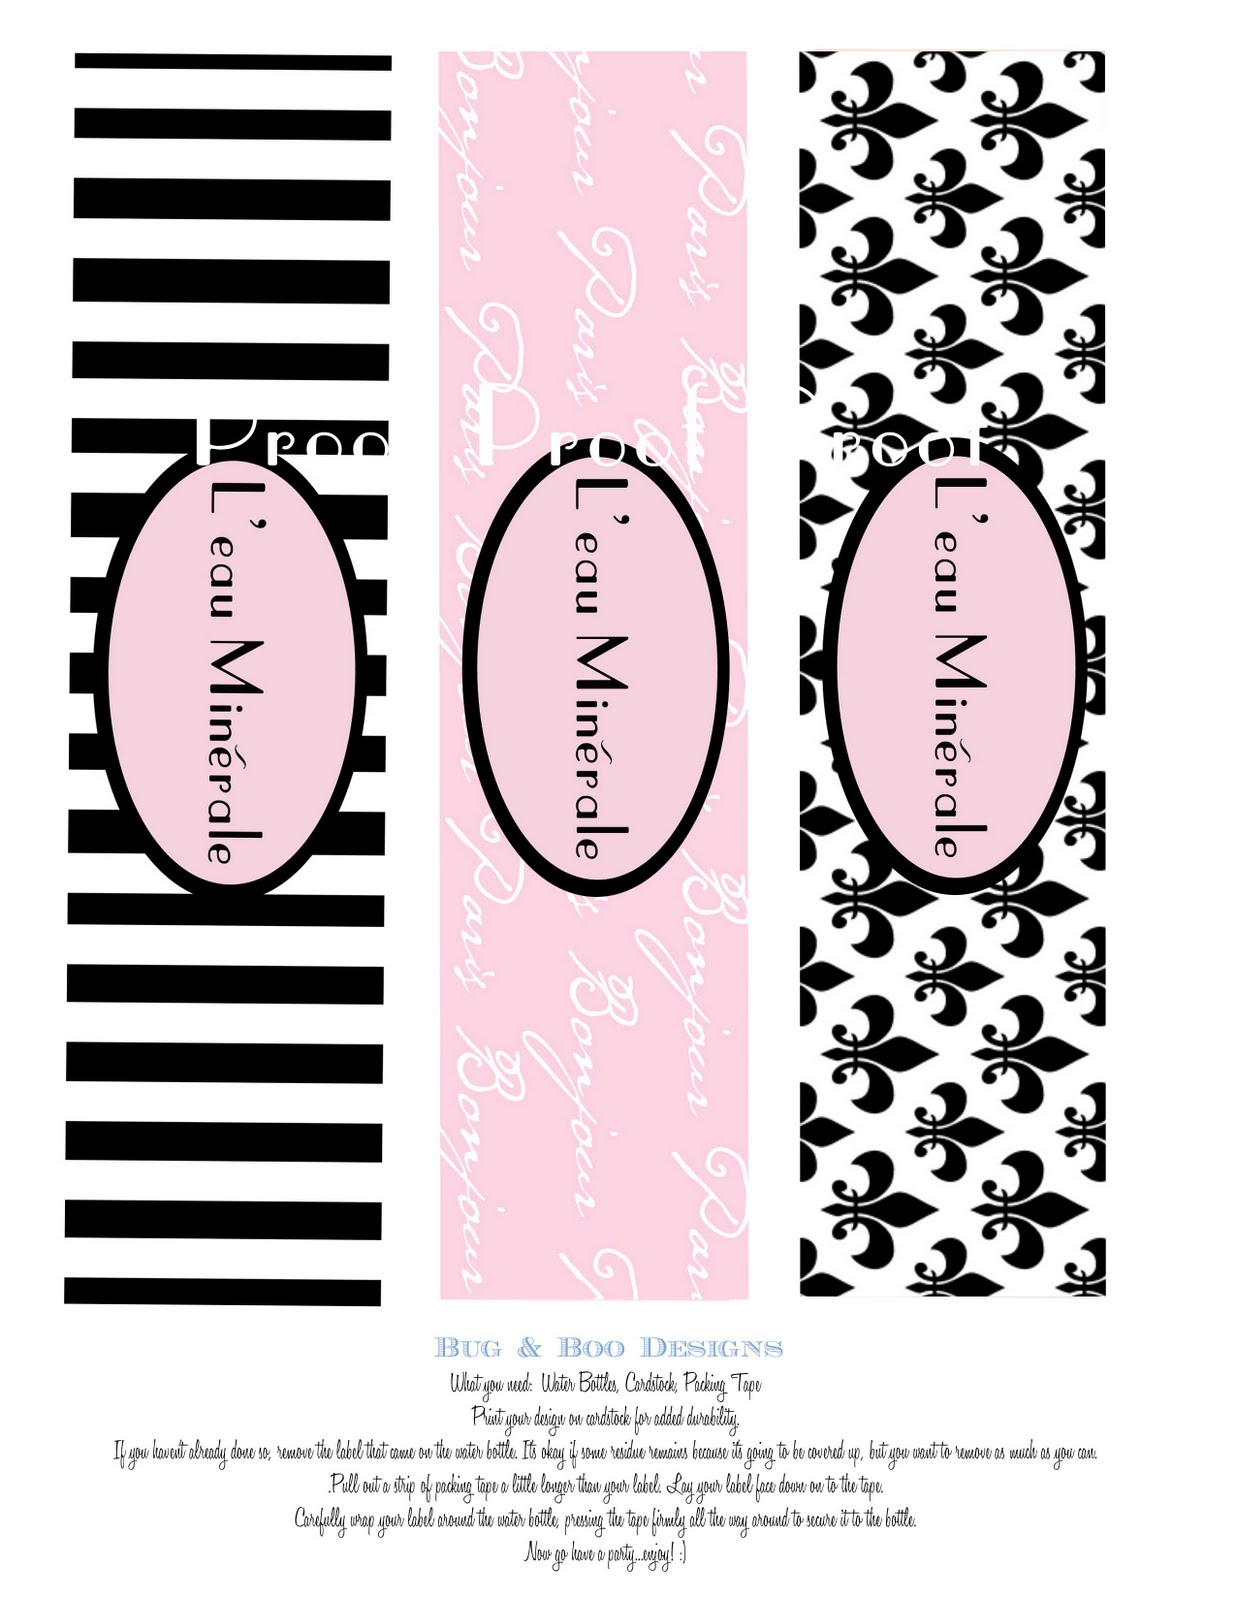 Free Printable Paris Water Bottle Labels | Download Them Or Print - Free Printable Paris Water Bottle Labels